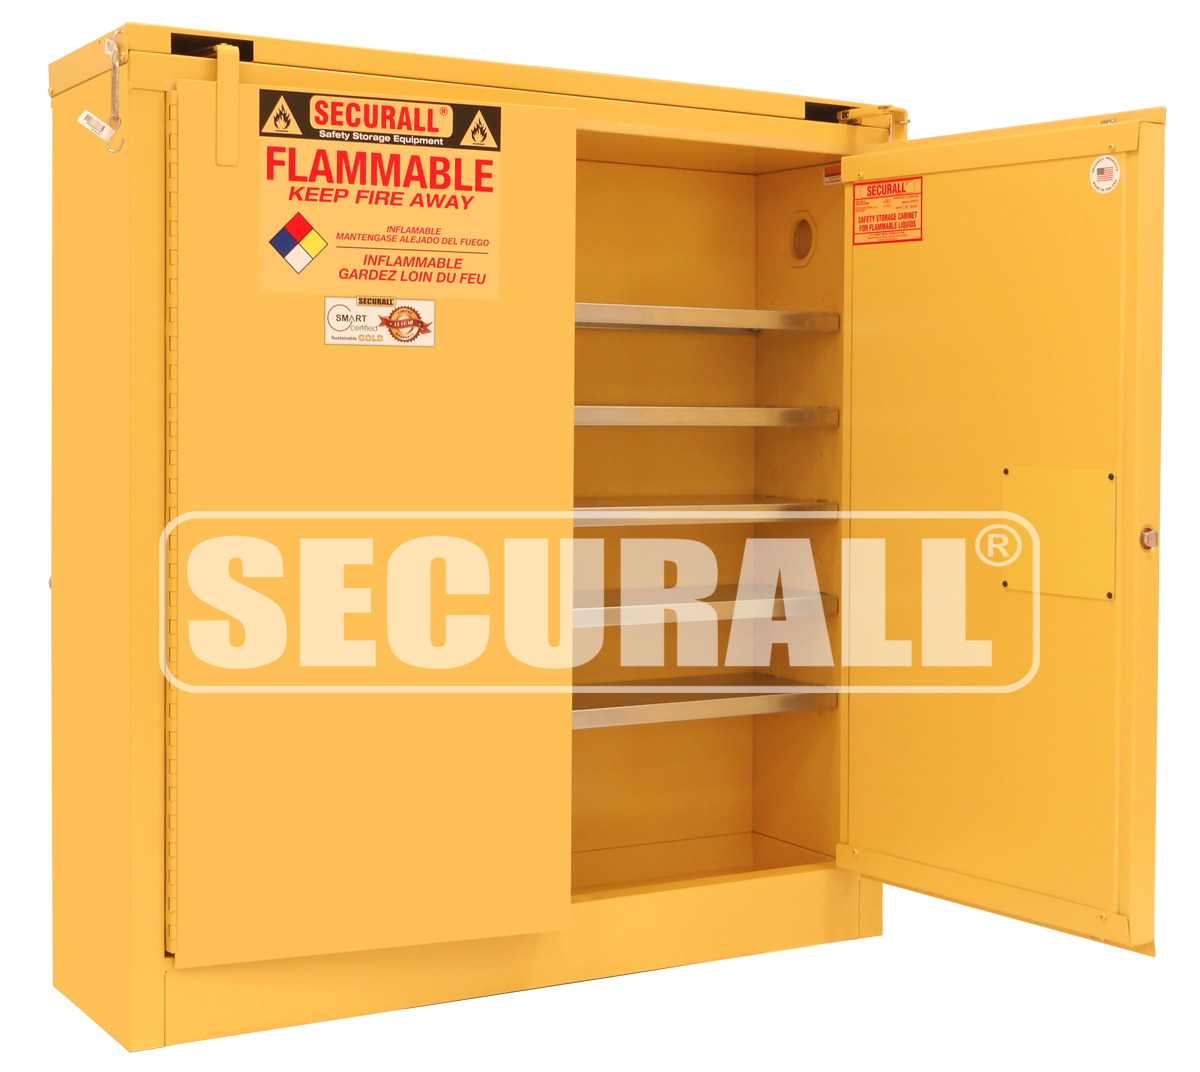 Yellow Flammable Cabinet Securallr Wall Mounted Storage Cabinets Wall Mountable Cabinets